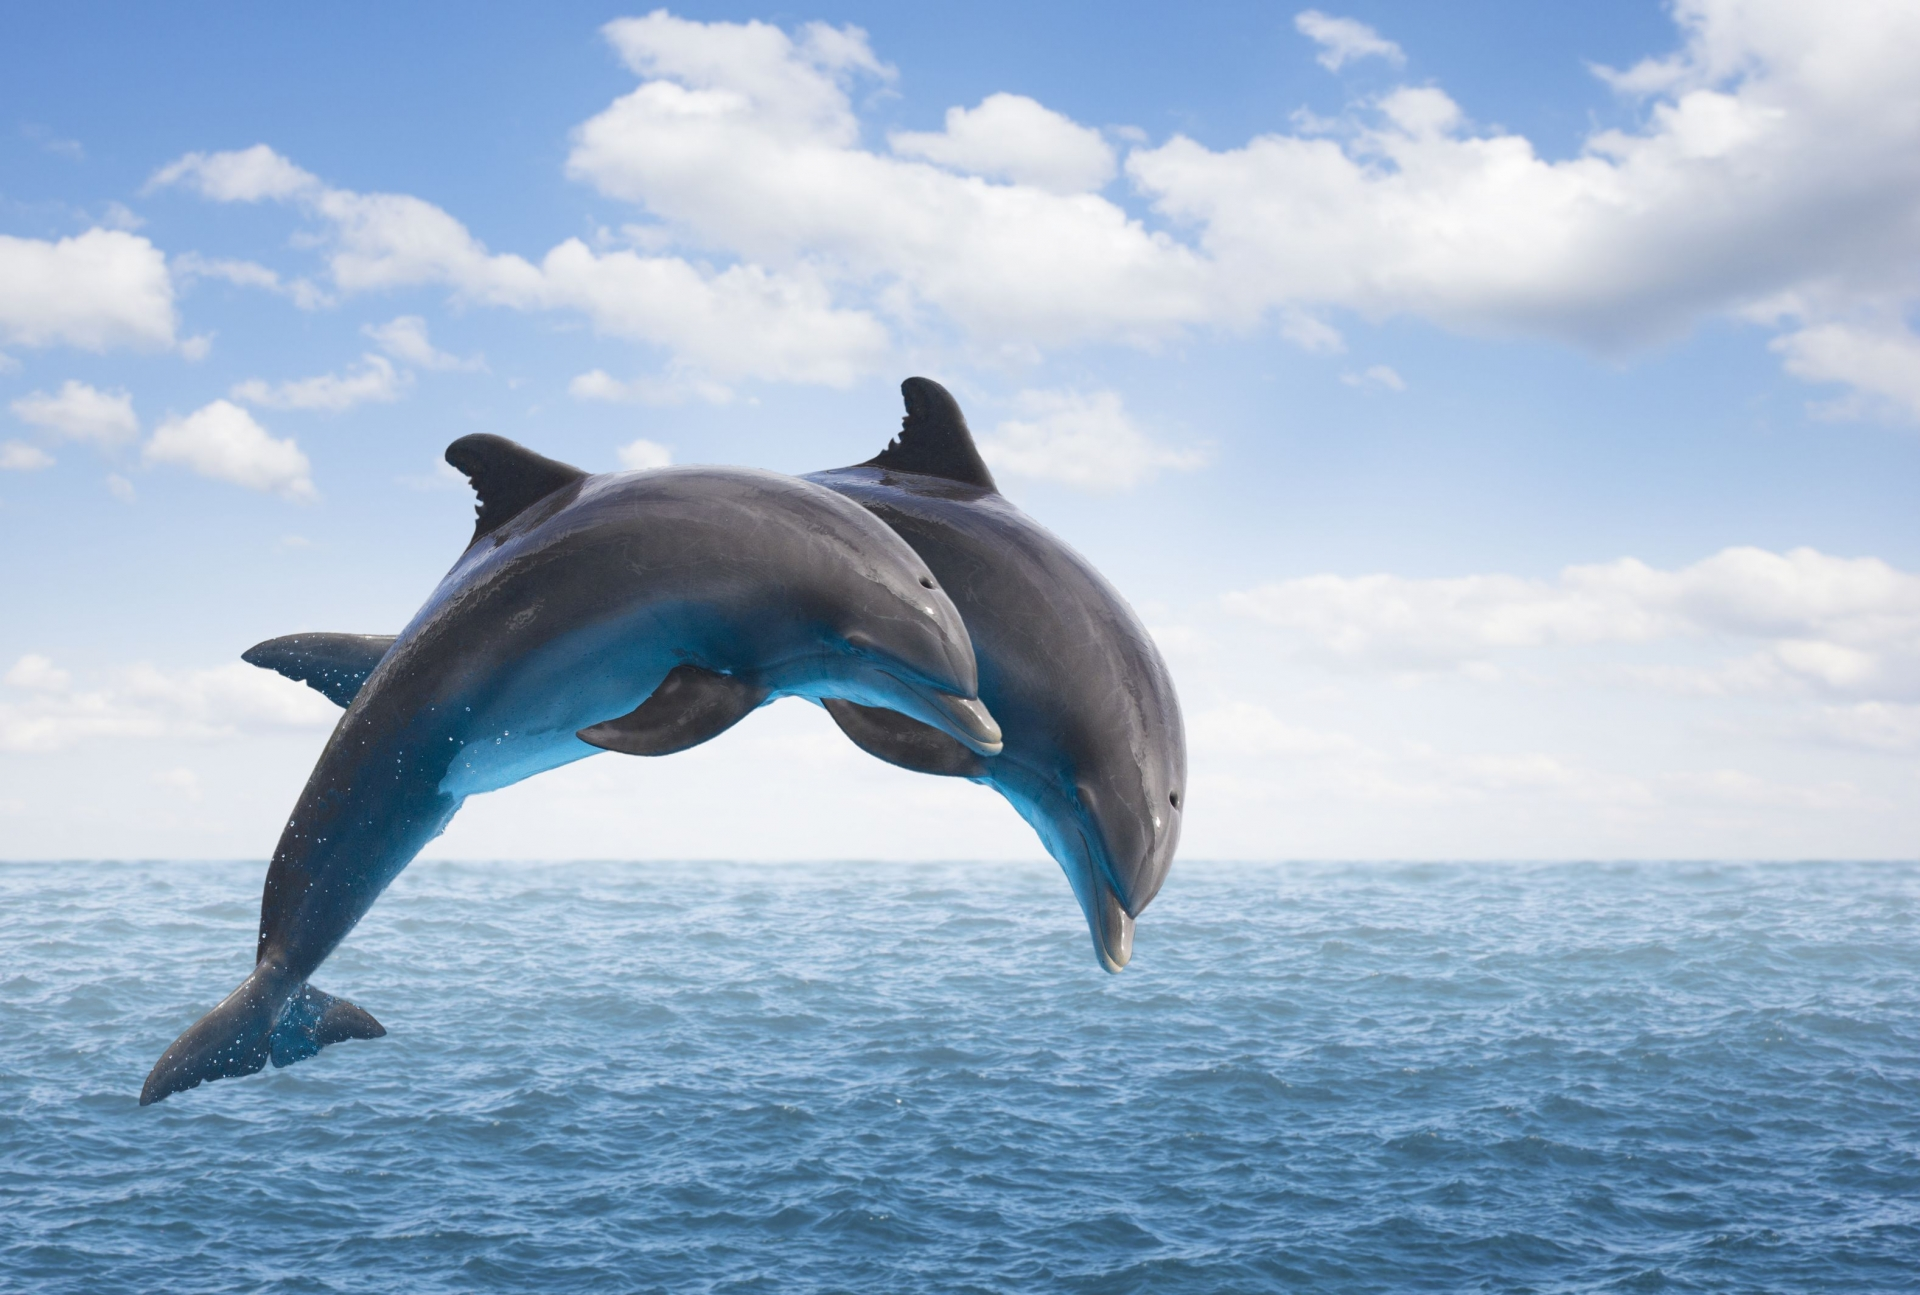 dolphins appearance off central coast sparks excitement